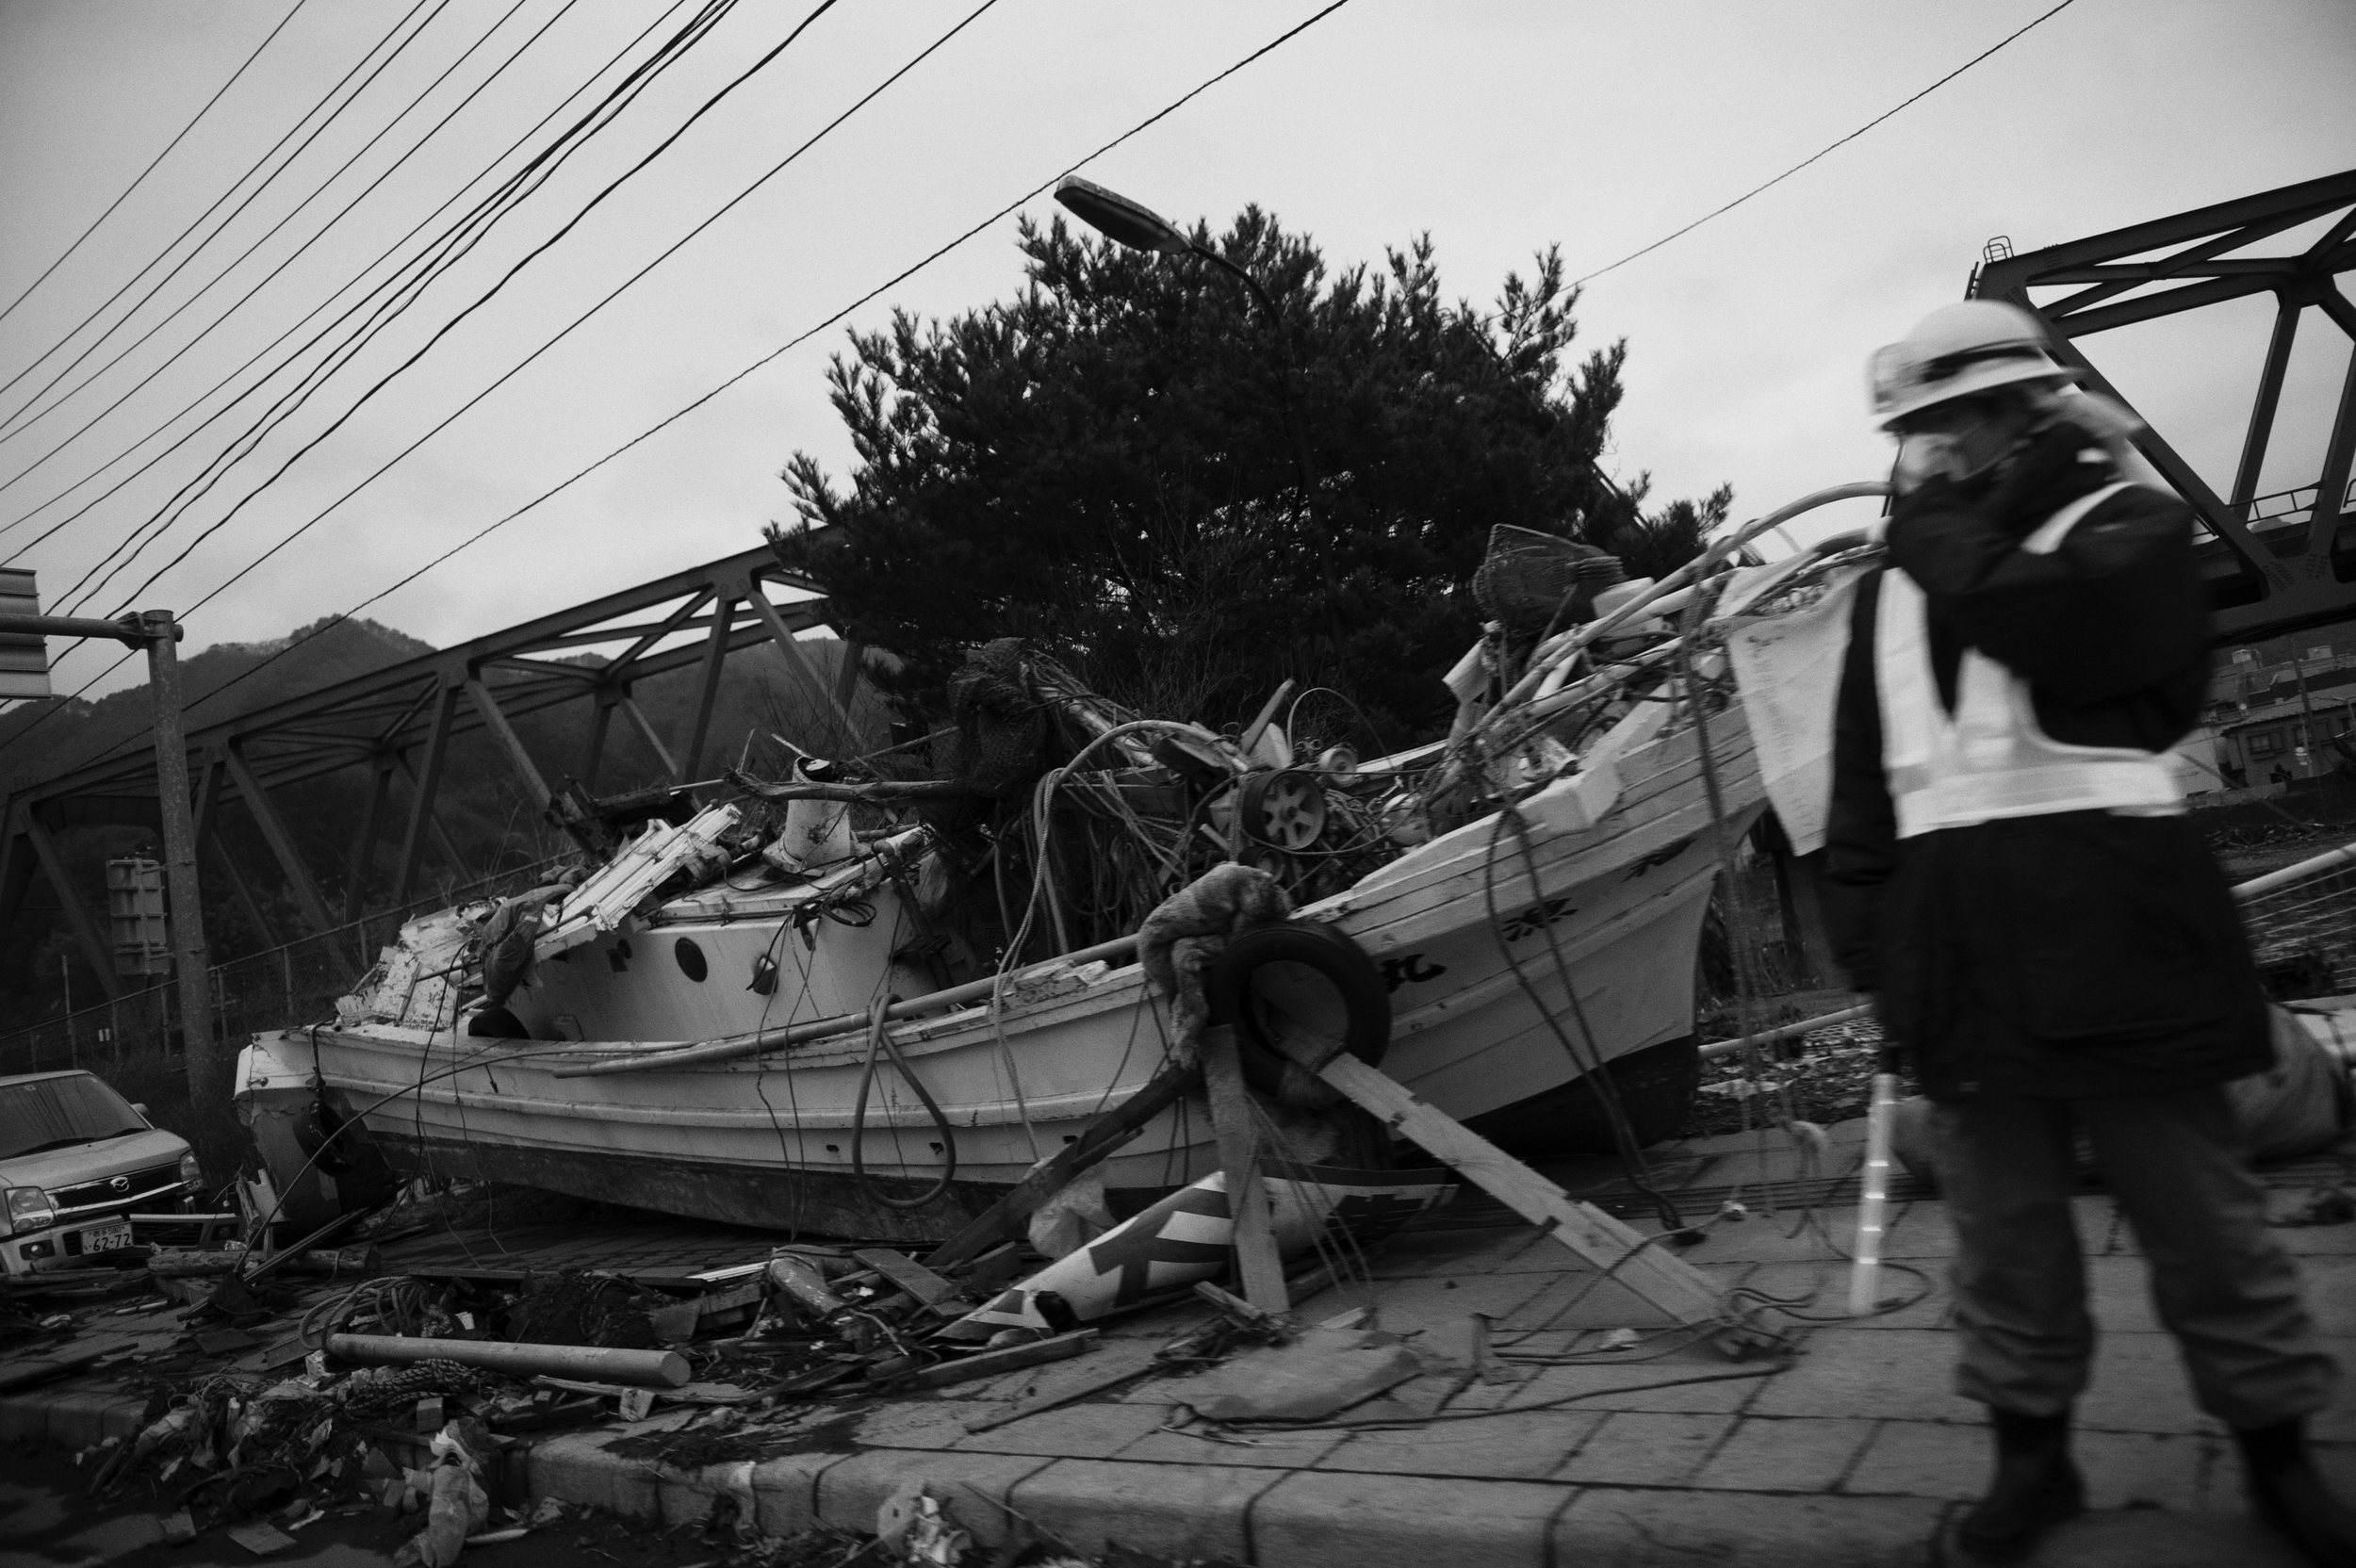 A destroyed boat in  Kamaishi , Iwate, Japan, March 23, 2011. (Photo/ Mark Pearson) Almost all of the 29,000 fishing boats in Miyagi, Iwate, and Fukushima prefectures were rendered unusable after the 2011 Tōhoku earthquake and tsunami struck.12,000 fishing boats in Miyagi prefecture were destroyed or damaged, and at least 440 fishermen were killed or missing.